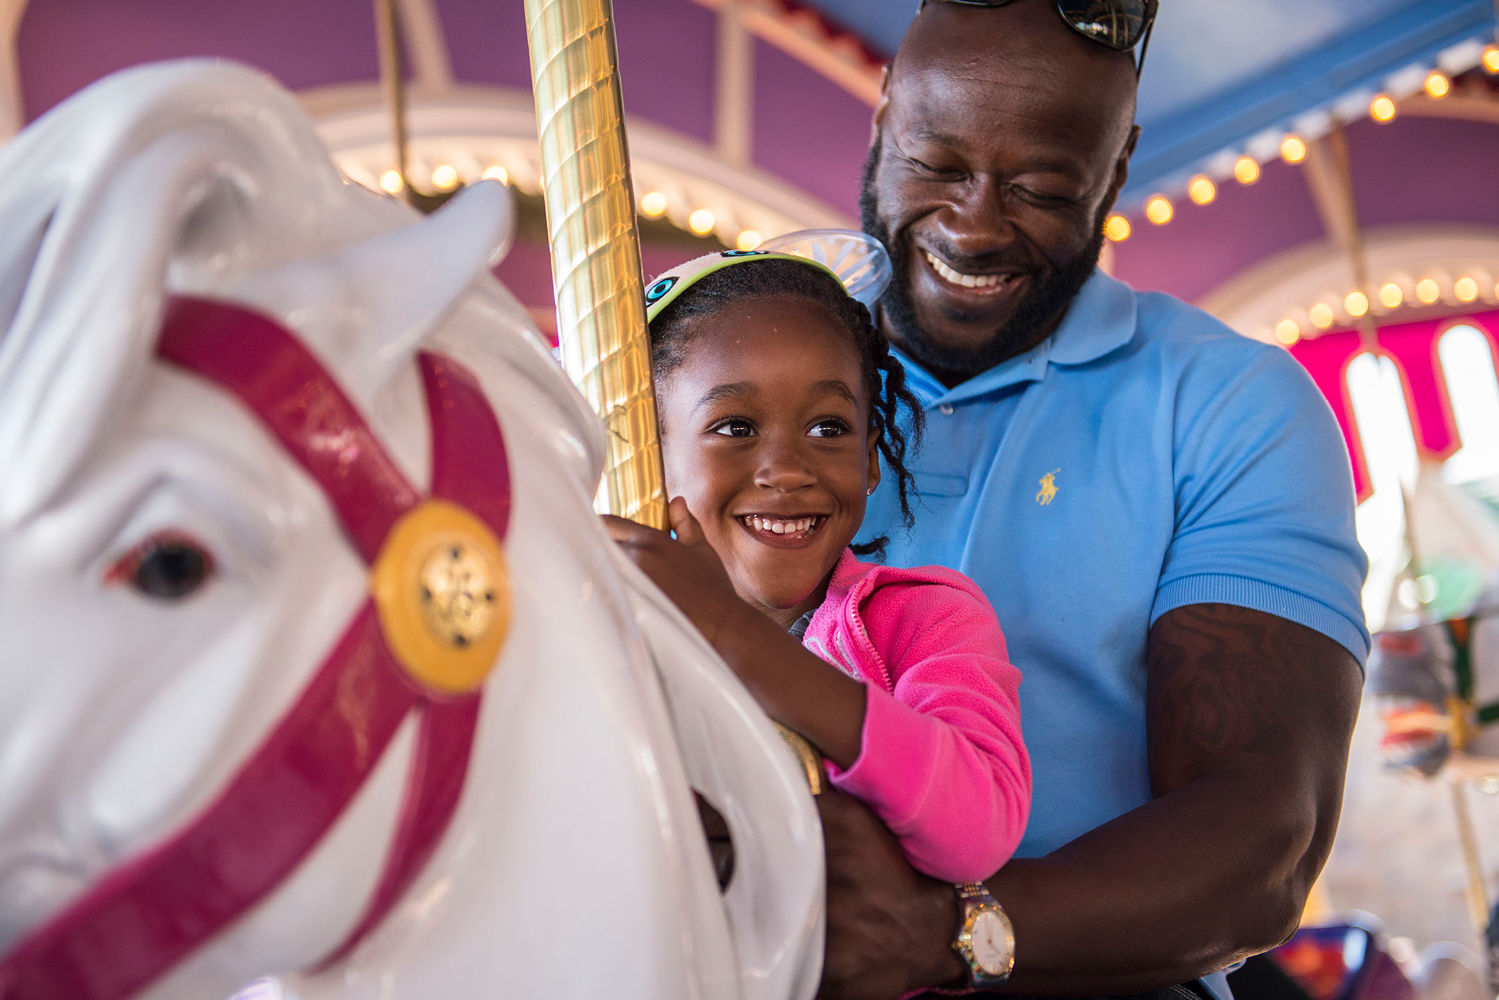 Disney World Has a New Package for Your Kid's Special First Visit